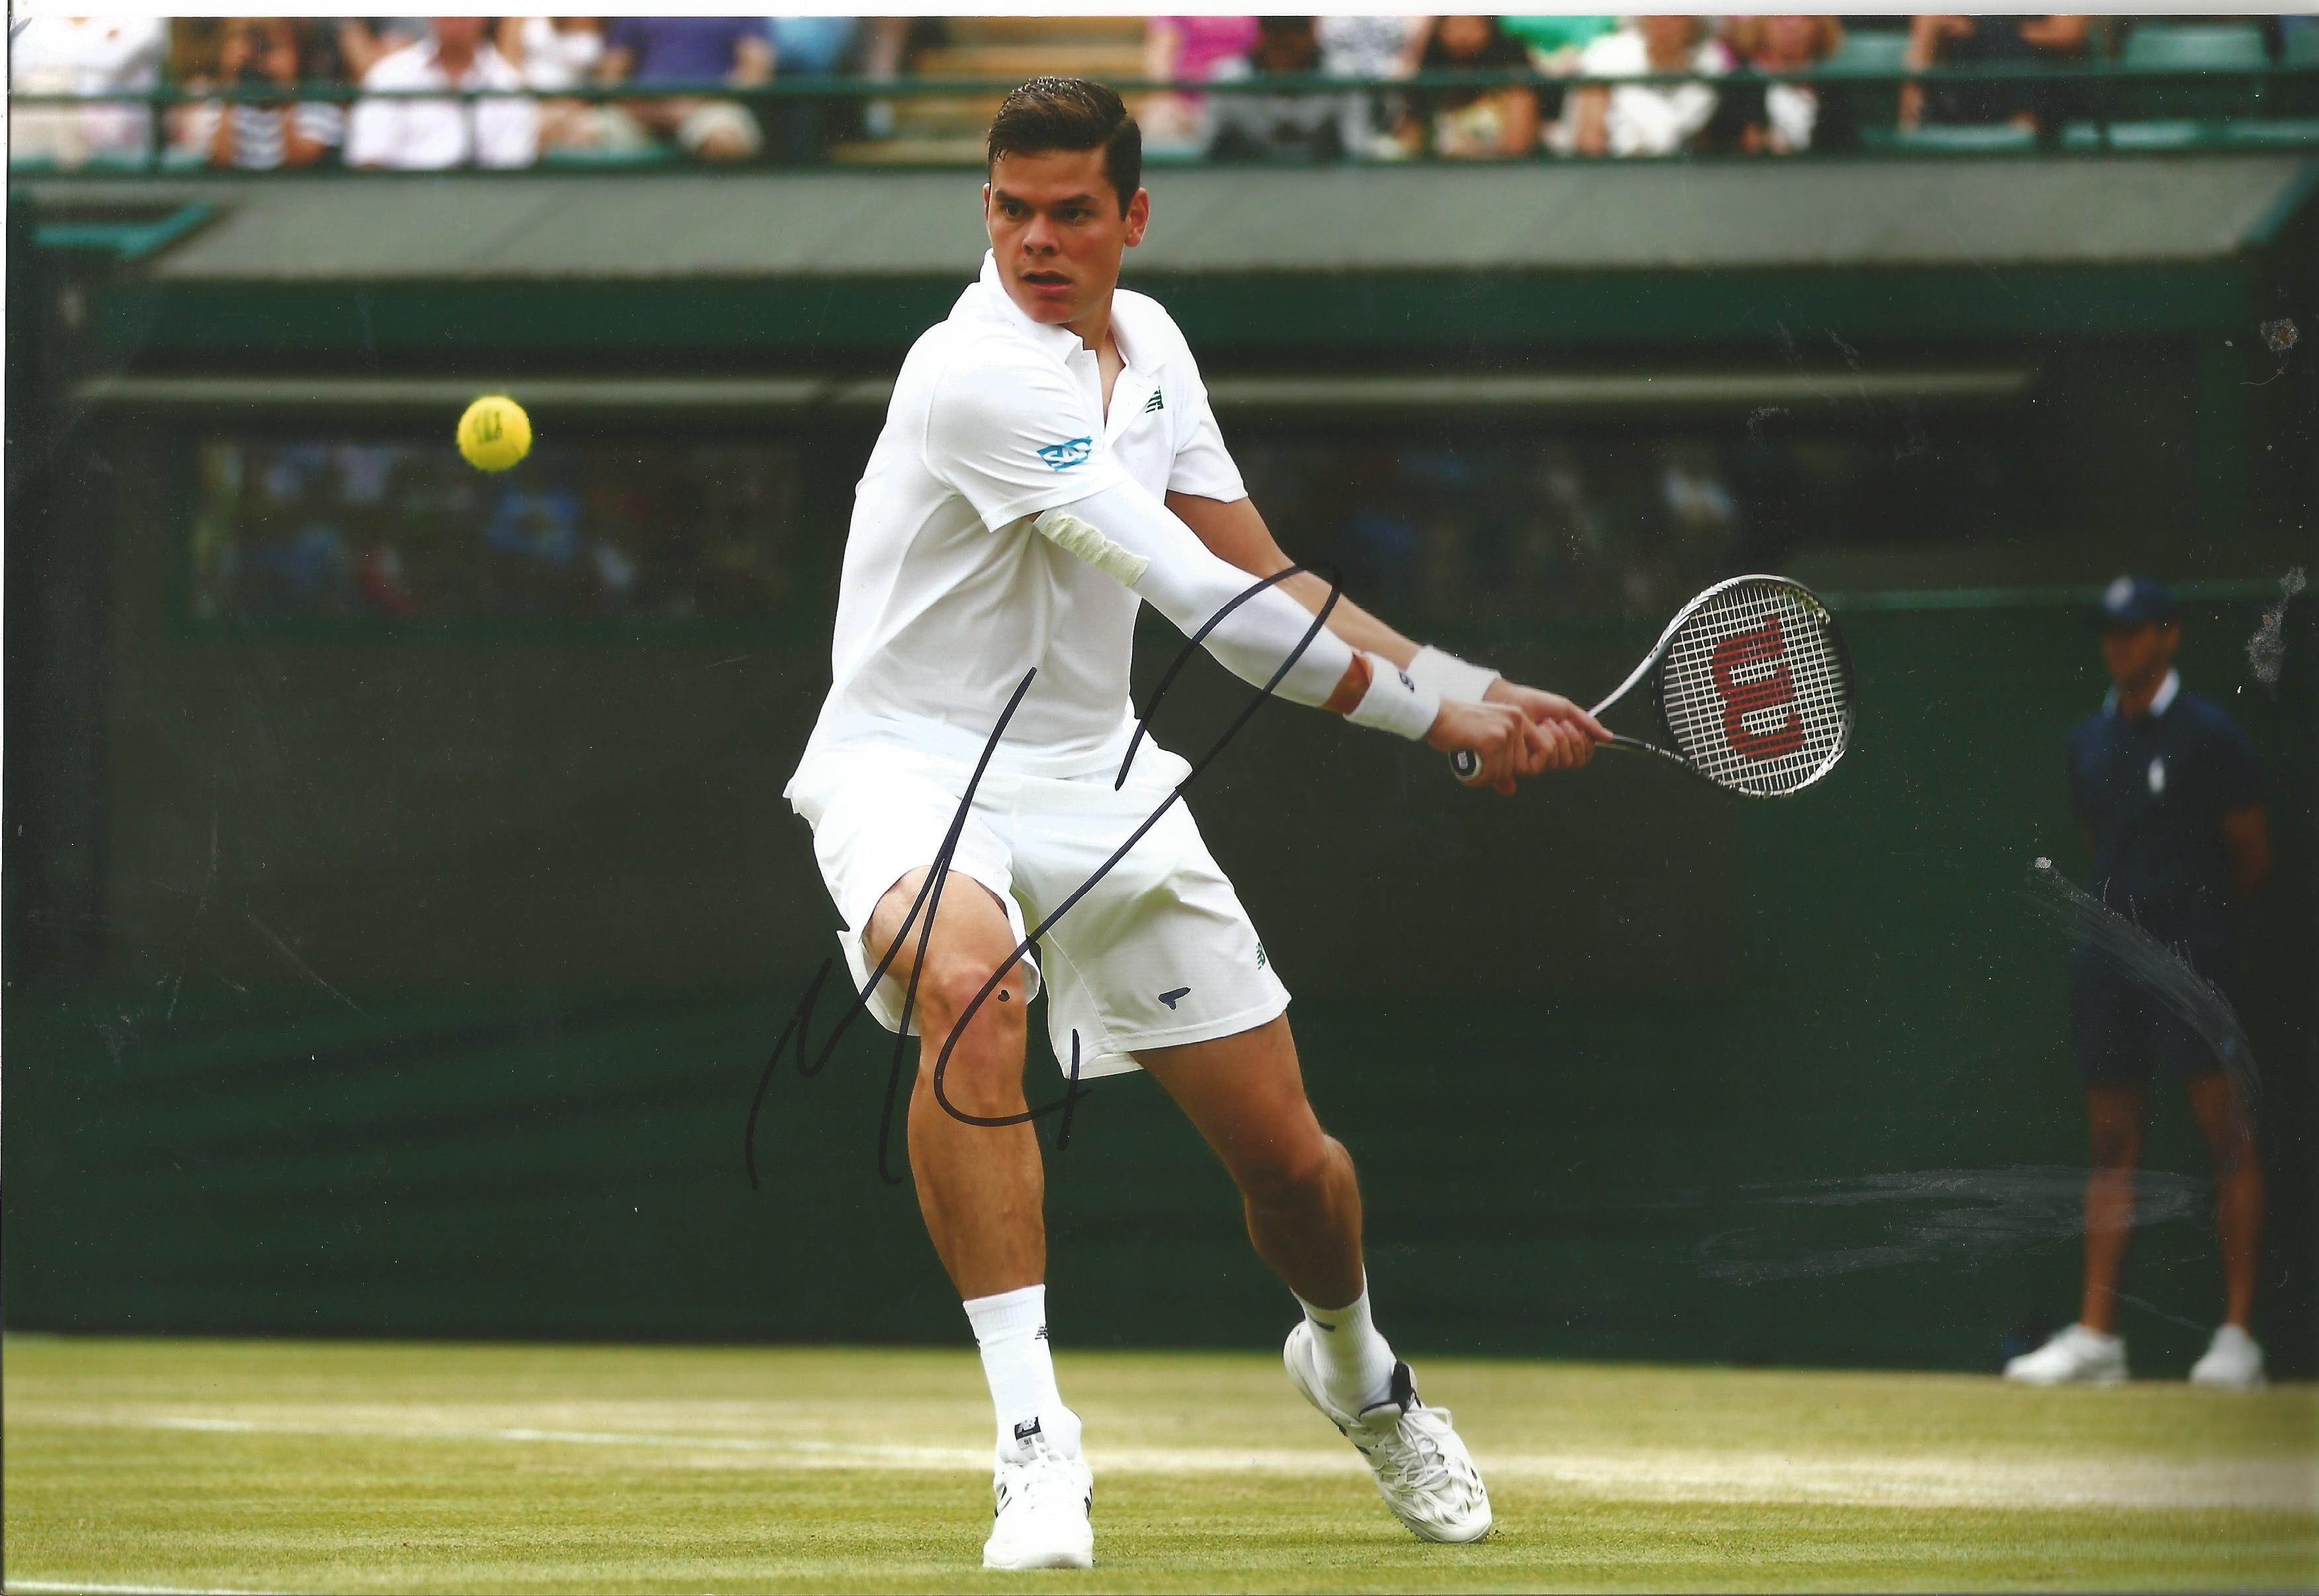 Tennis Milos Raonic signed 12x8 colour photo pictured in action at Wimbledon. Canadian